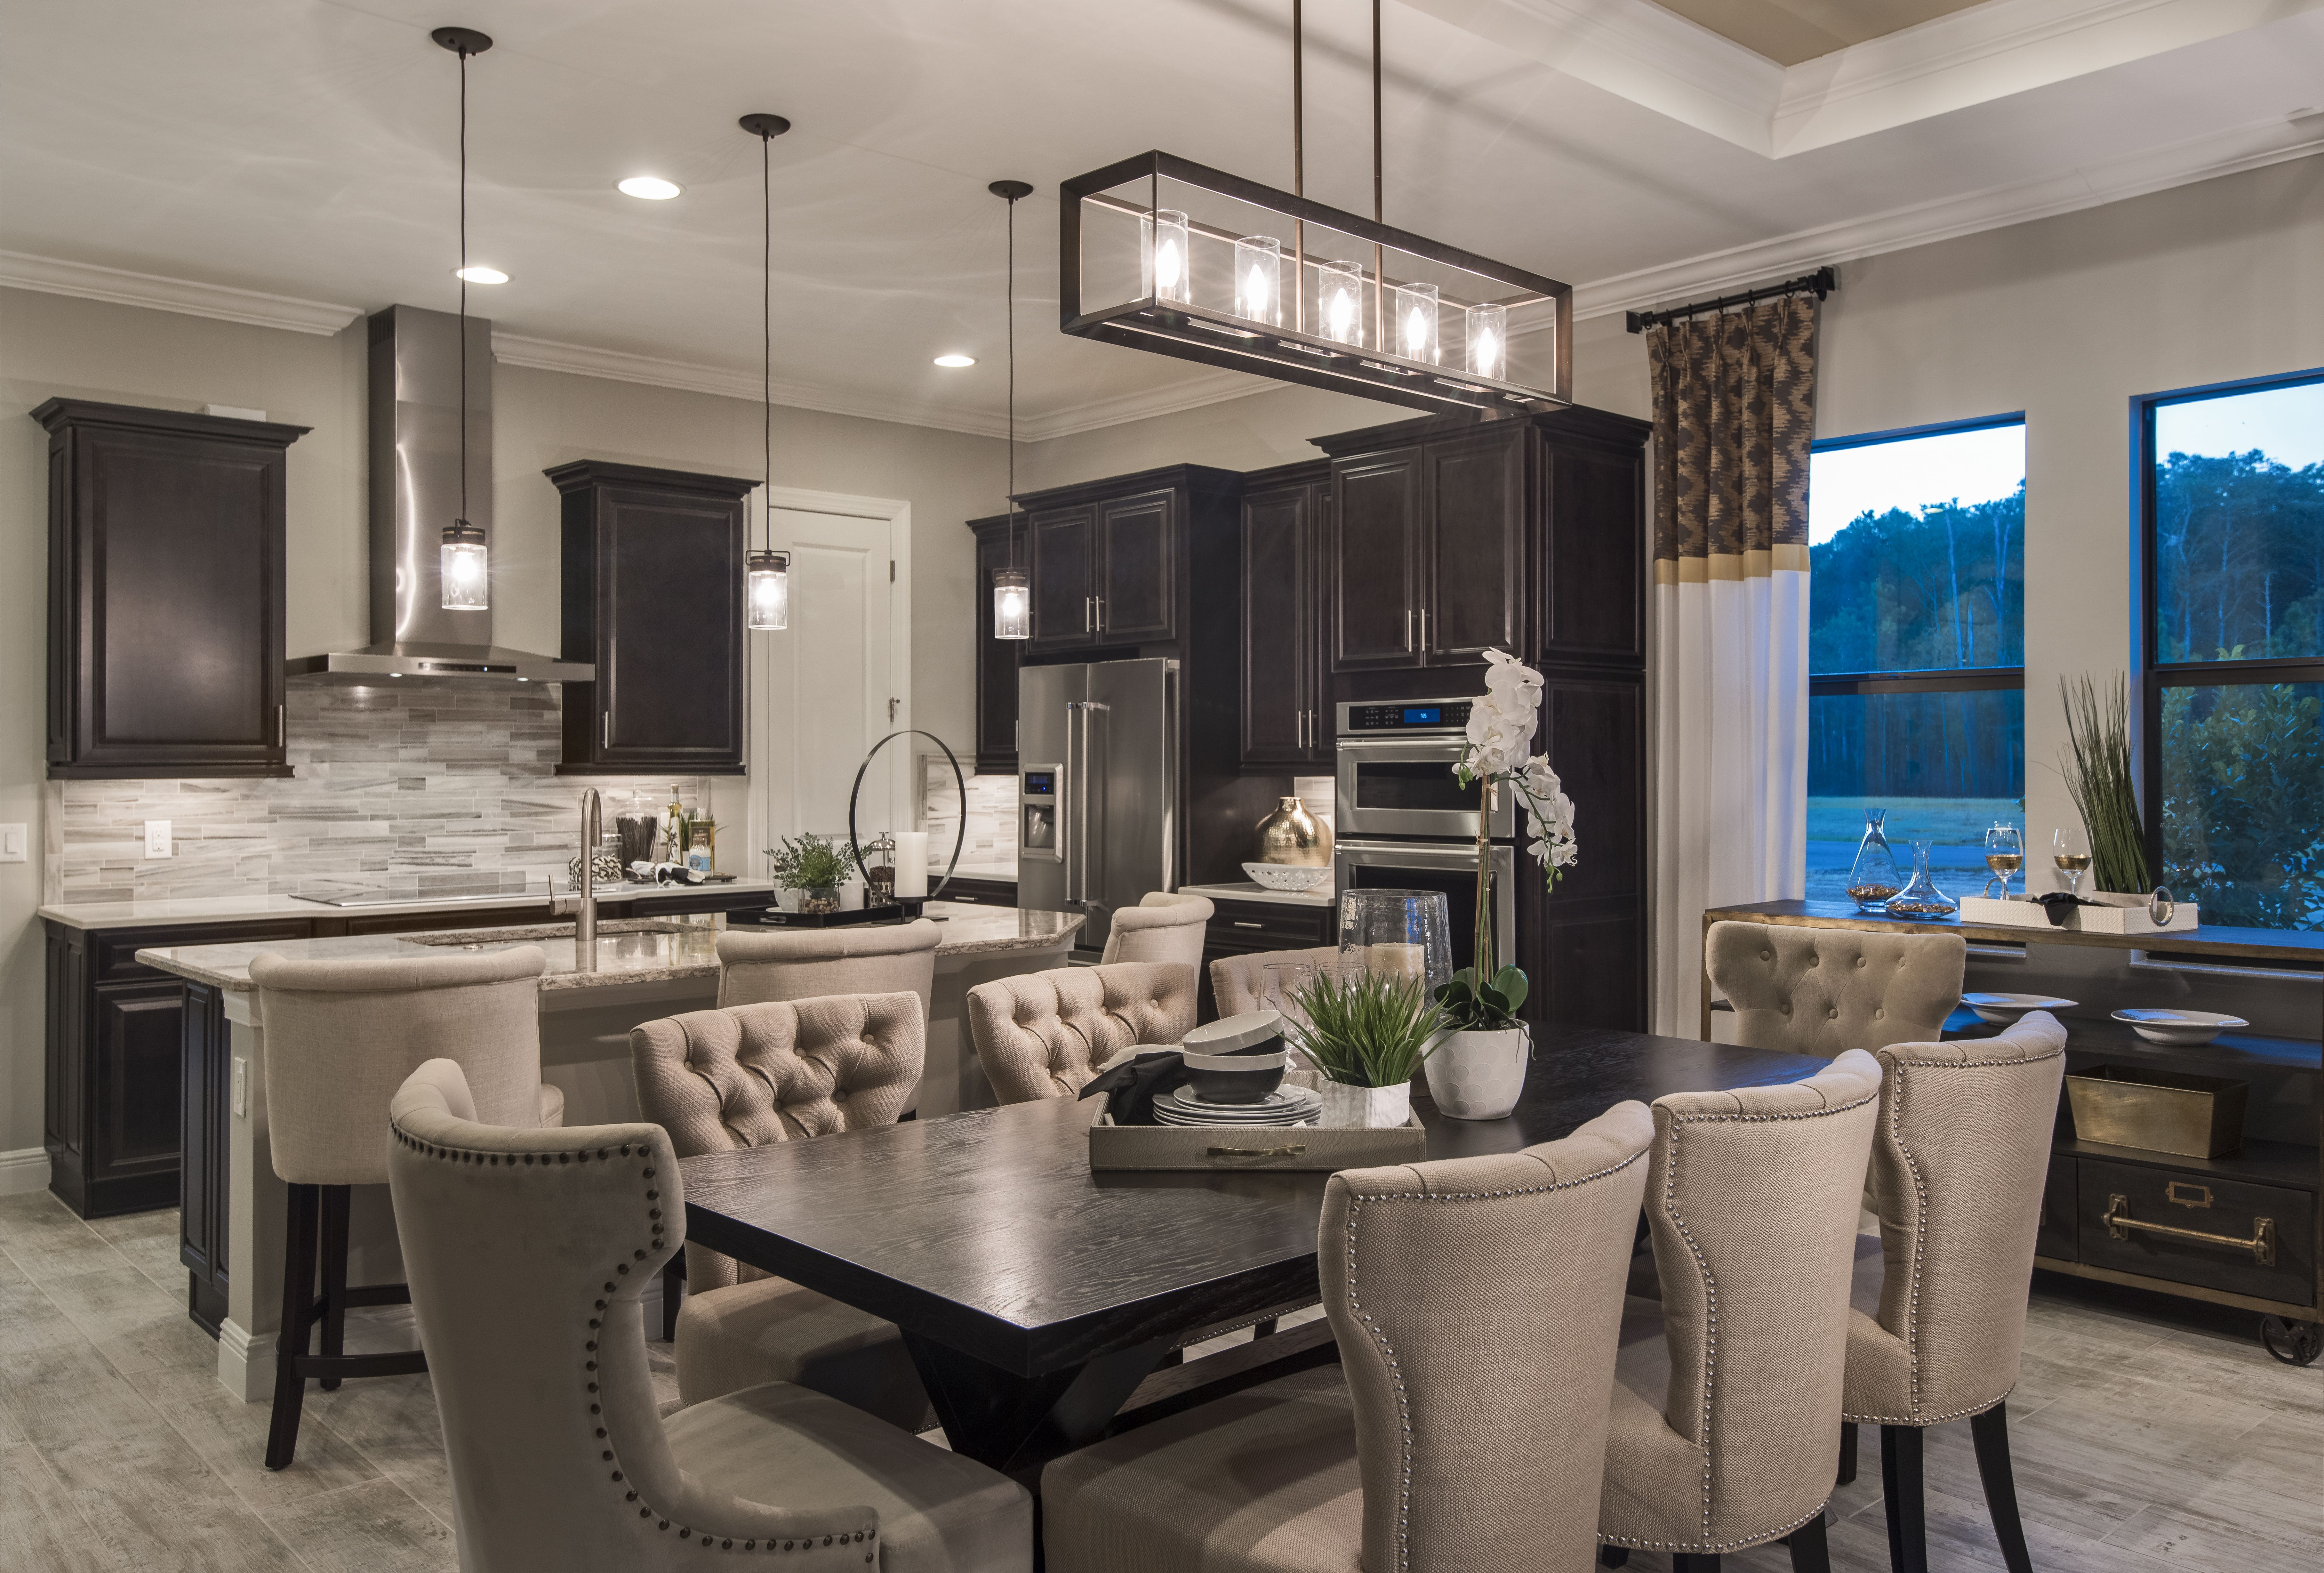 Use One Word To Describe This Space Home Decor Lennar Homes